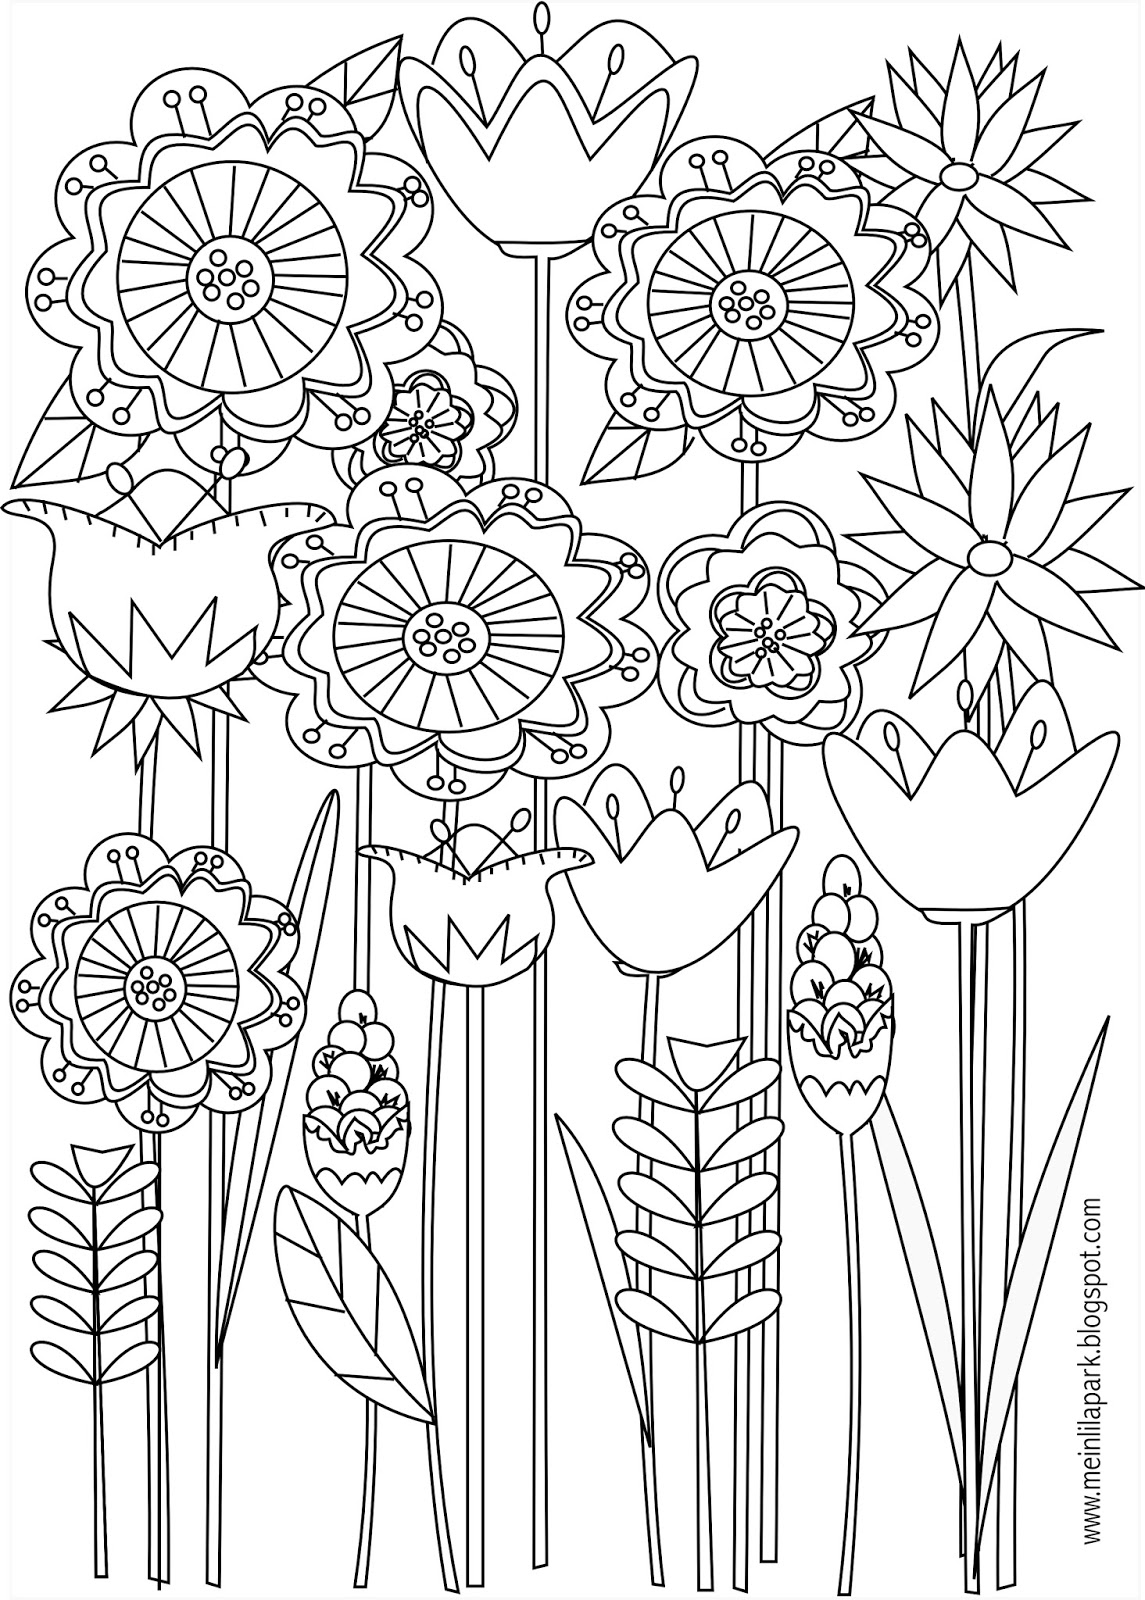 Free printable floral coloring page - ausdruckbare ... | free printable coloring pages for adults flowers